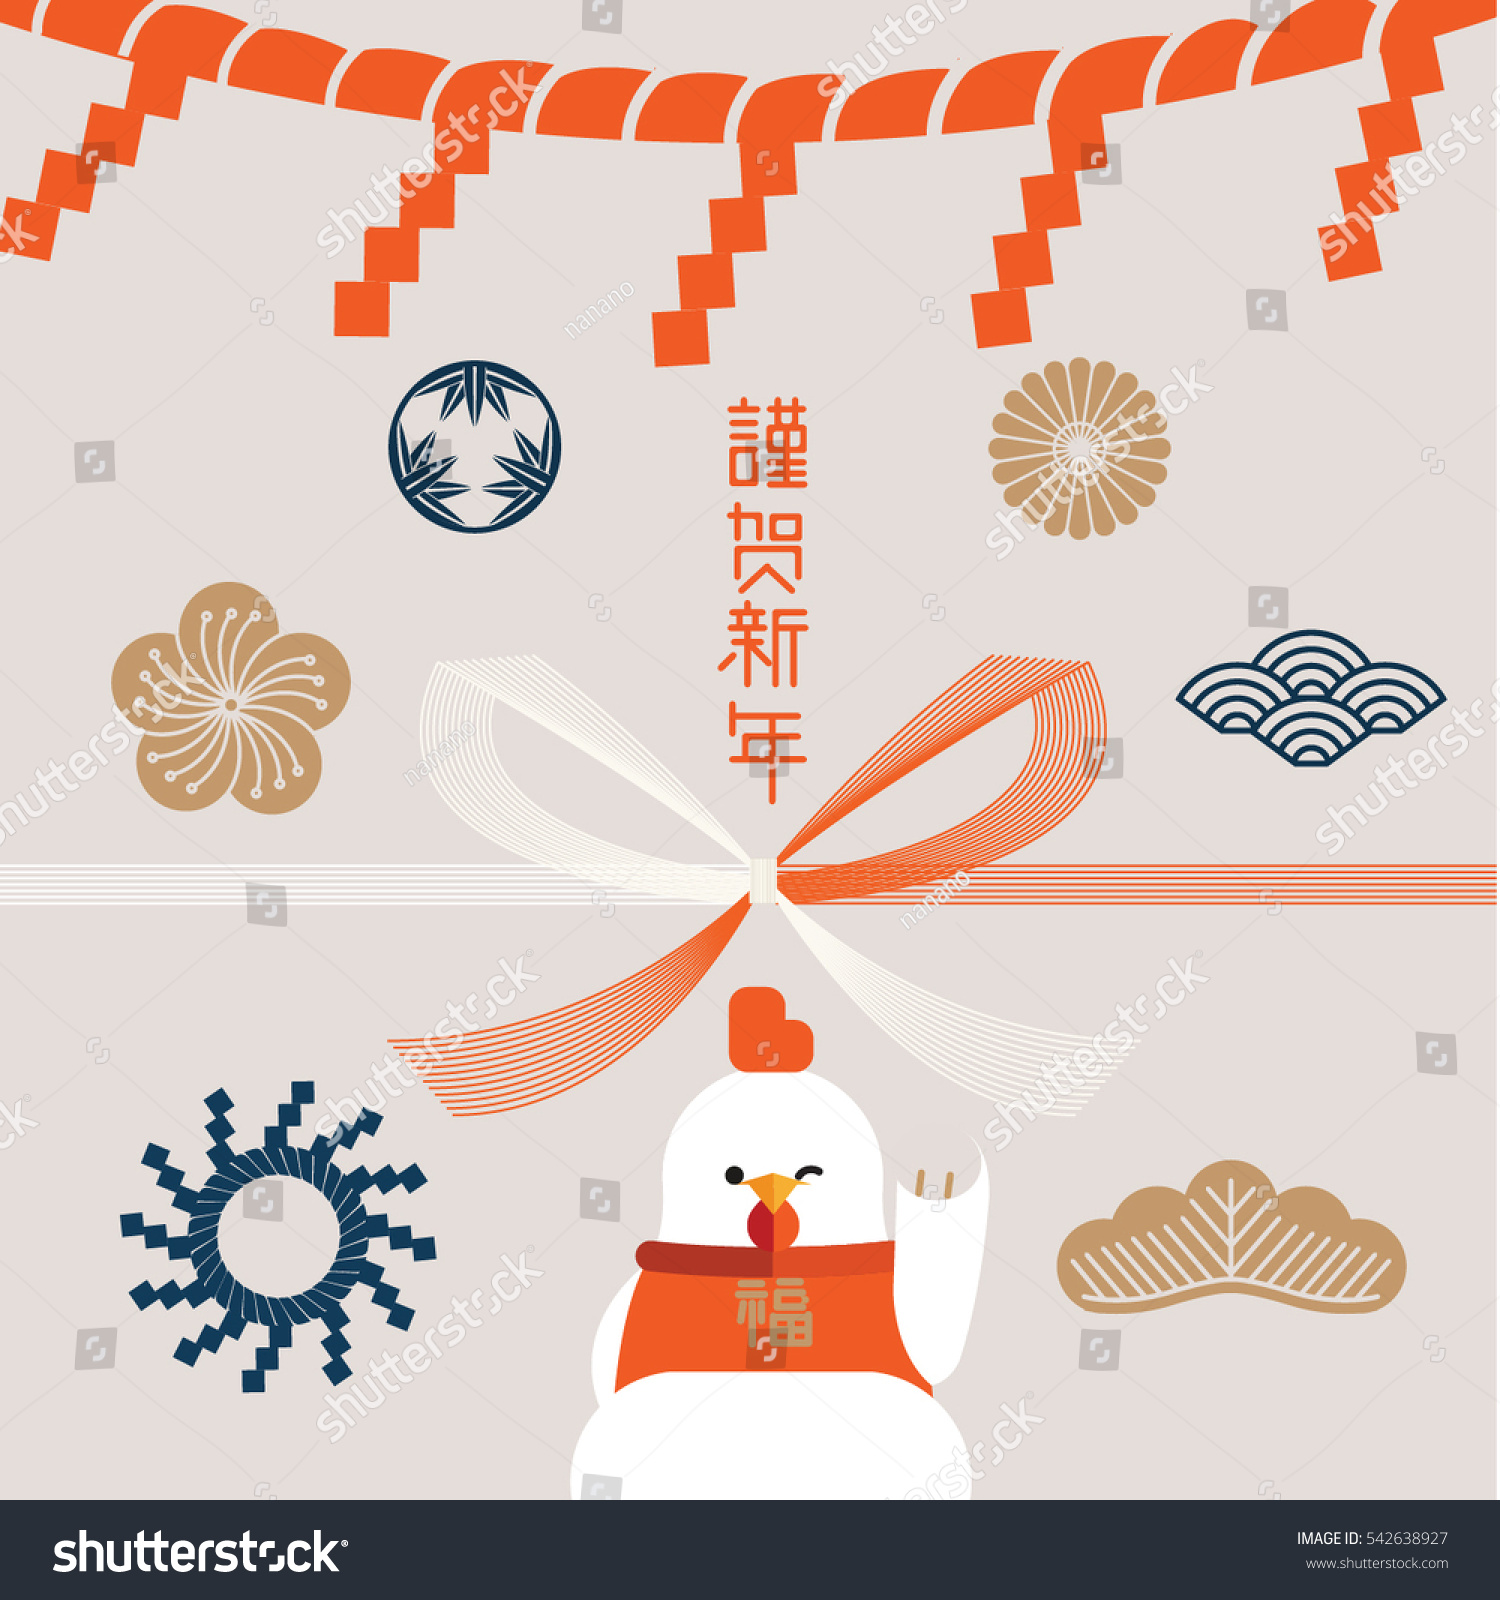 Year Rooster 2017 Japanese Iconic Element Stock Vector Royalty Free